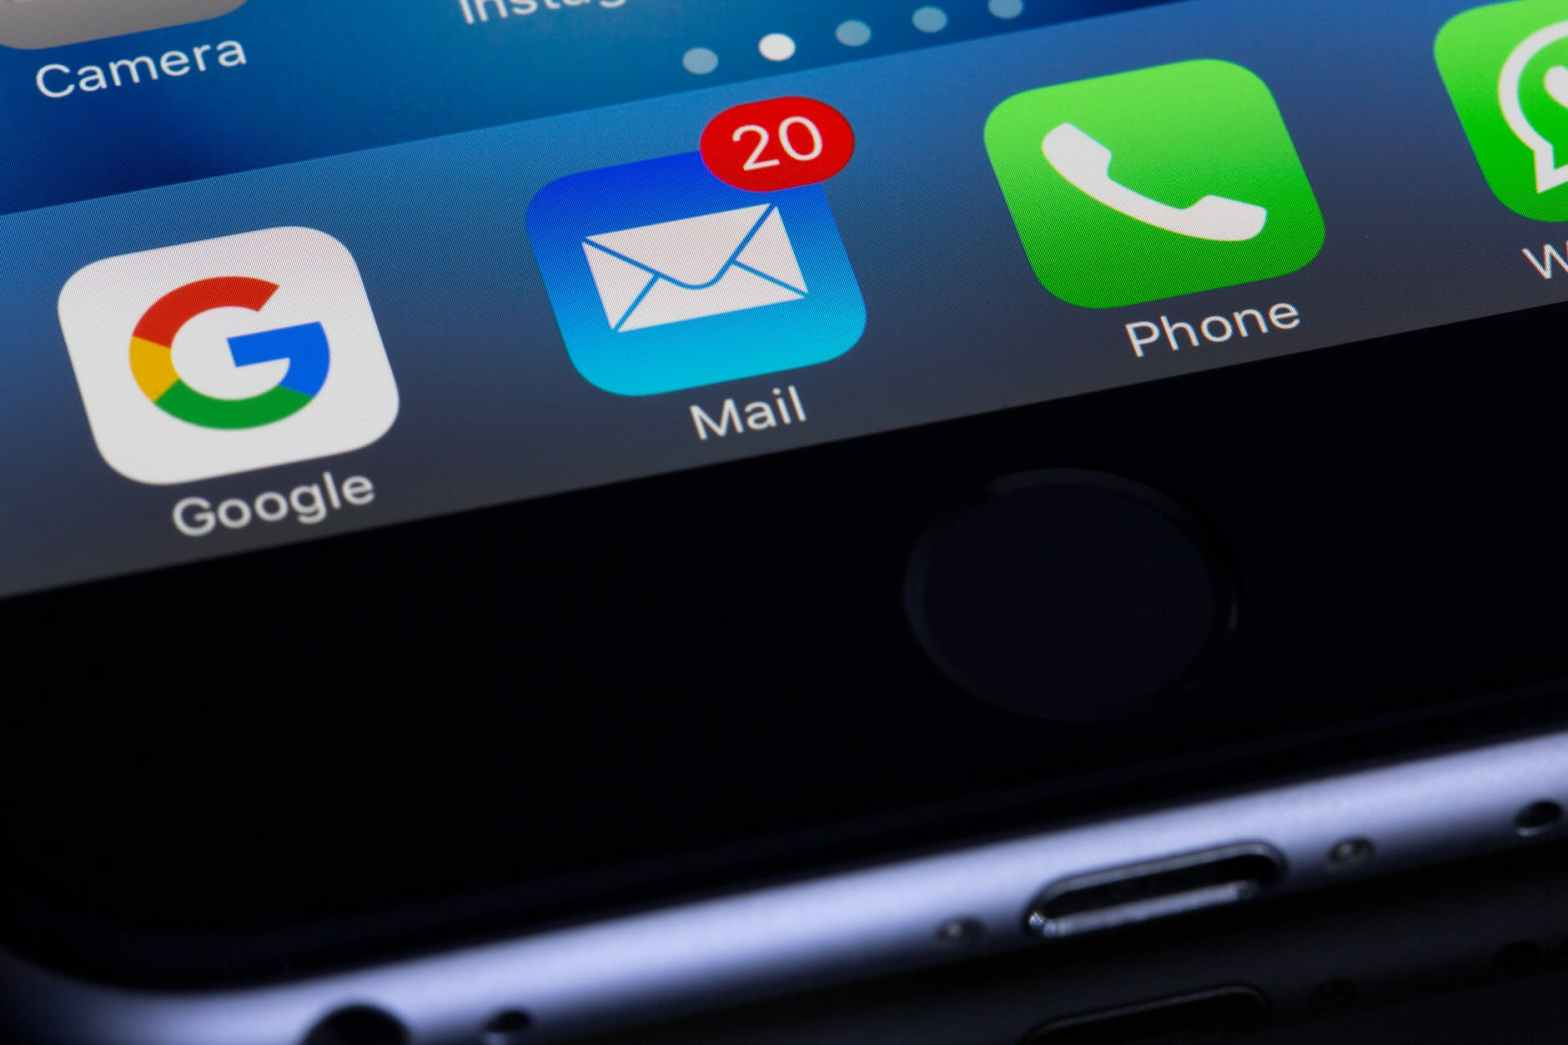 Marketing through E-mail and Issues Surrounding it